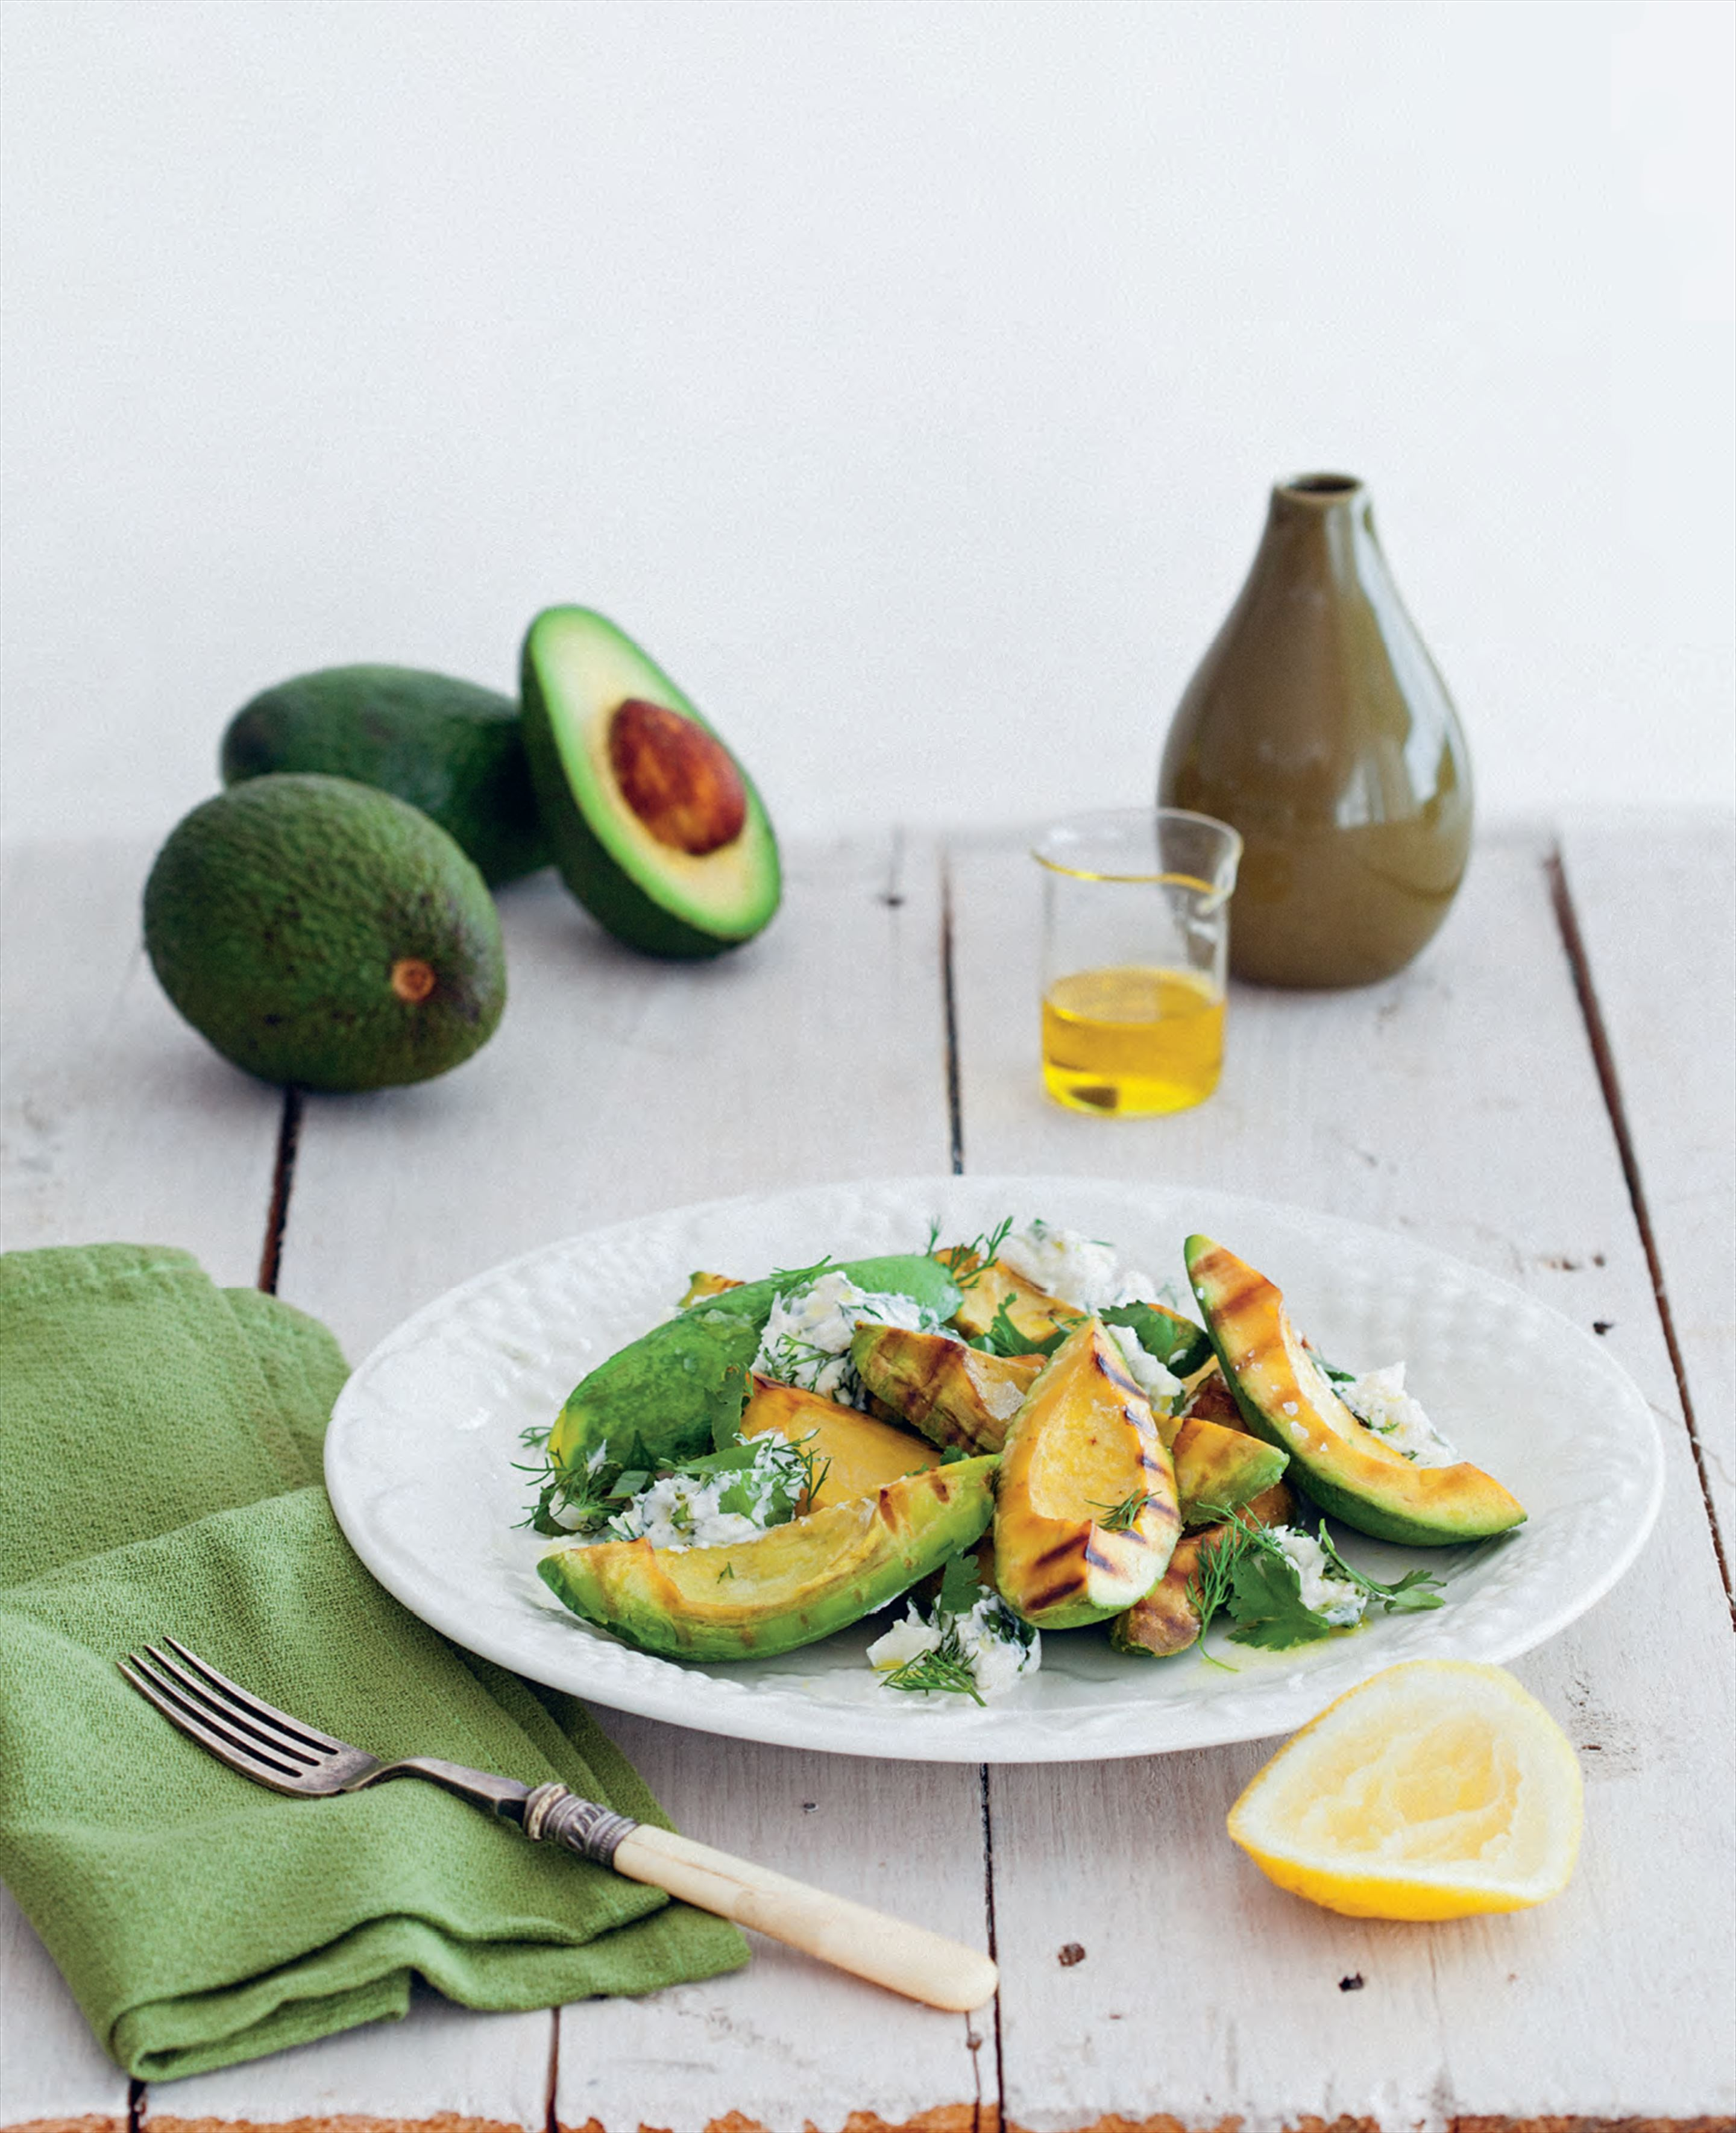 Barbecued avocado with herb labneh salad